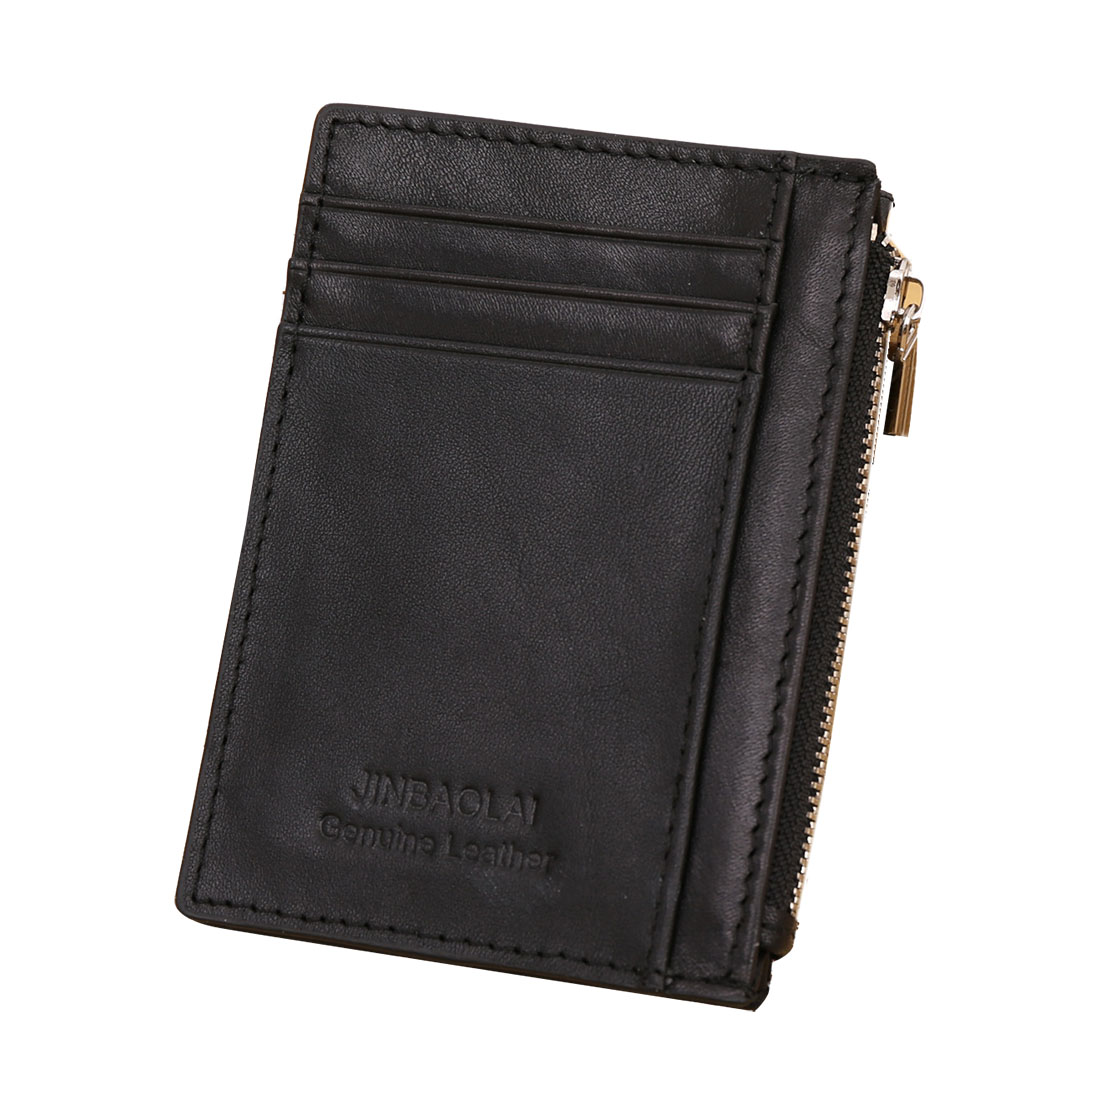 Jcb Mens Credit Card Wallet: 2018 New Hot Fashion And Good Quality Retro Mens Leather